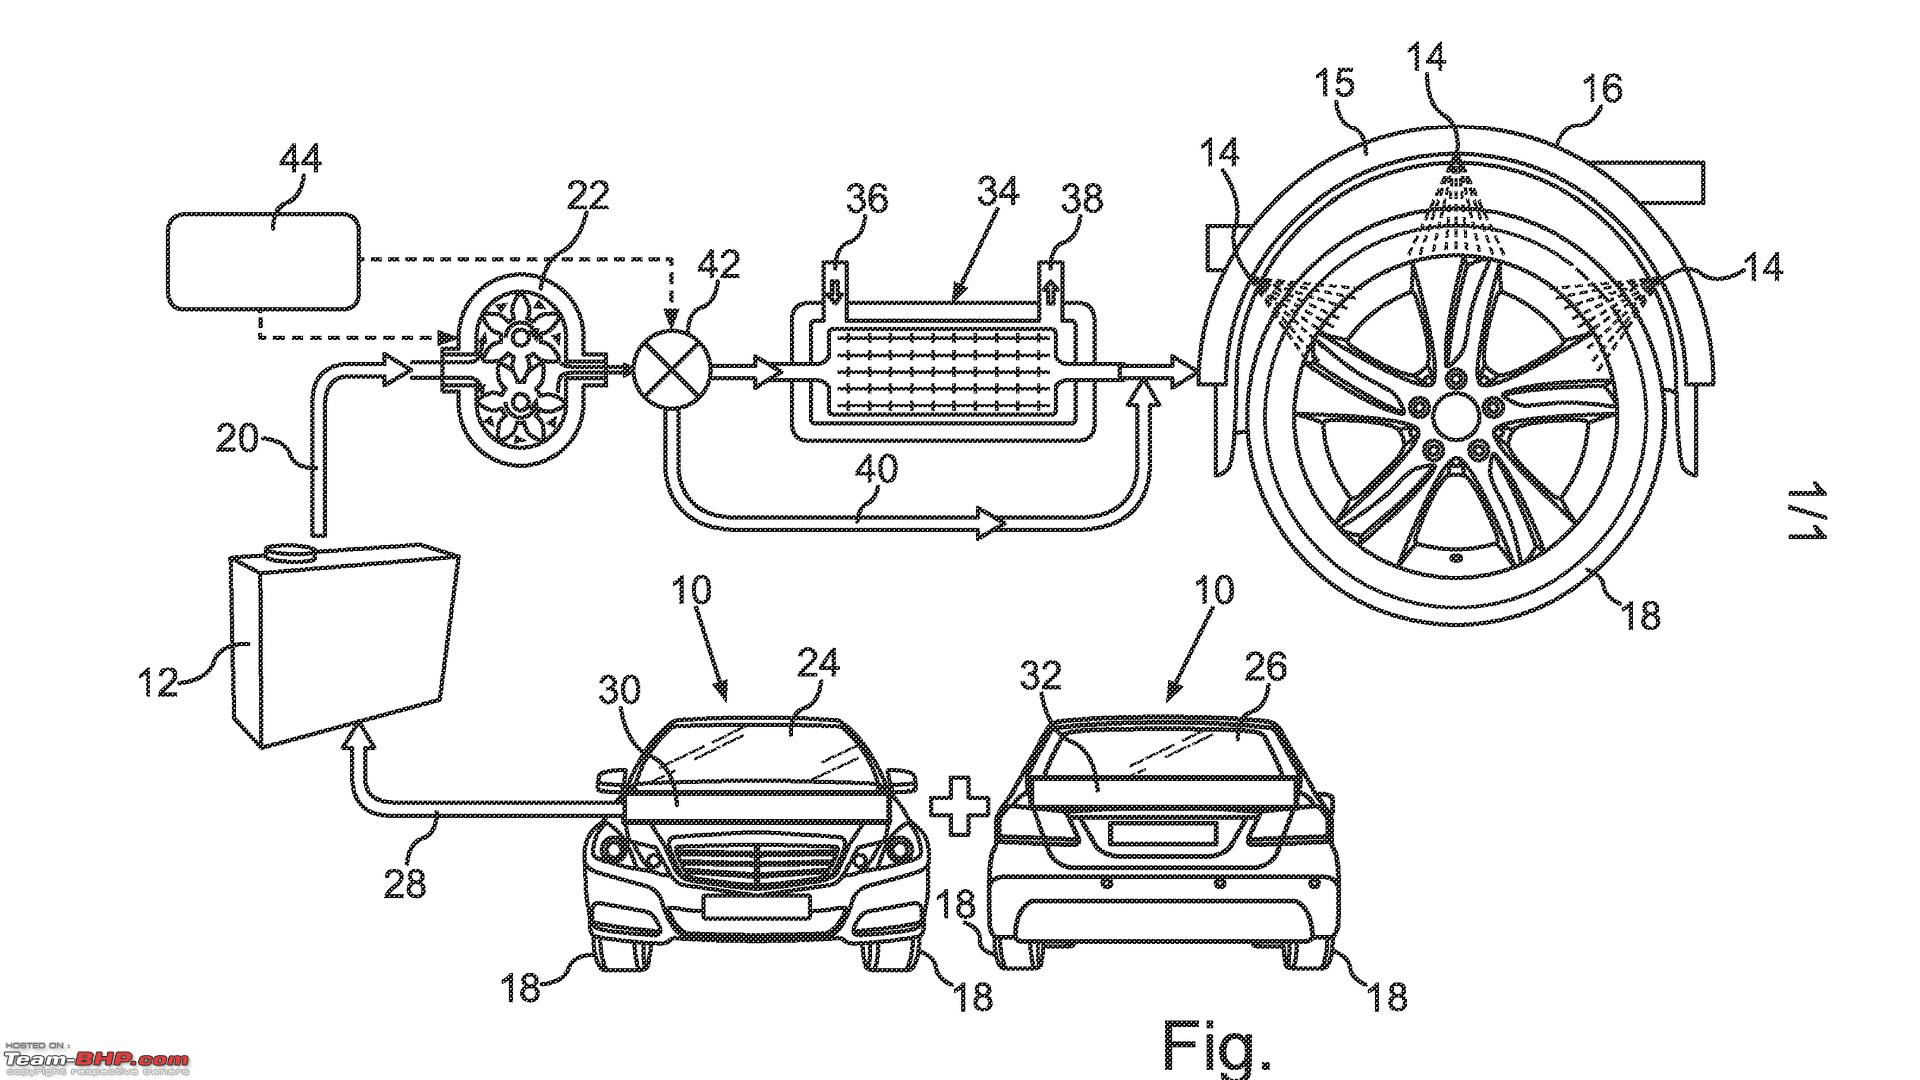 hight resolution of mercedes patents water cooling system for tyres mercedesbenzpatent jpg